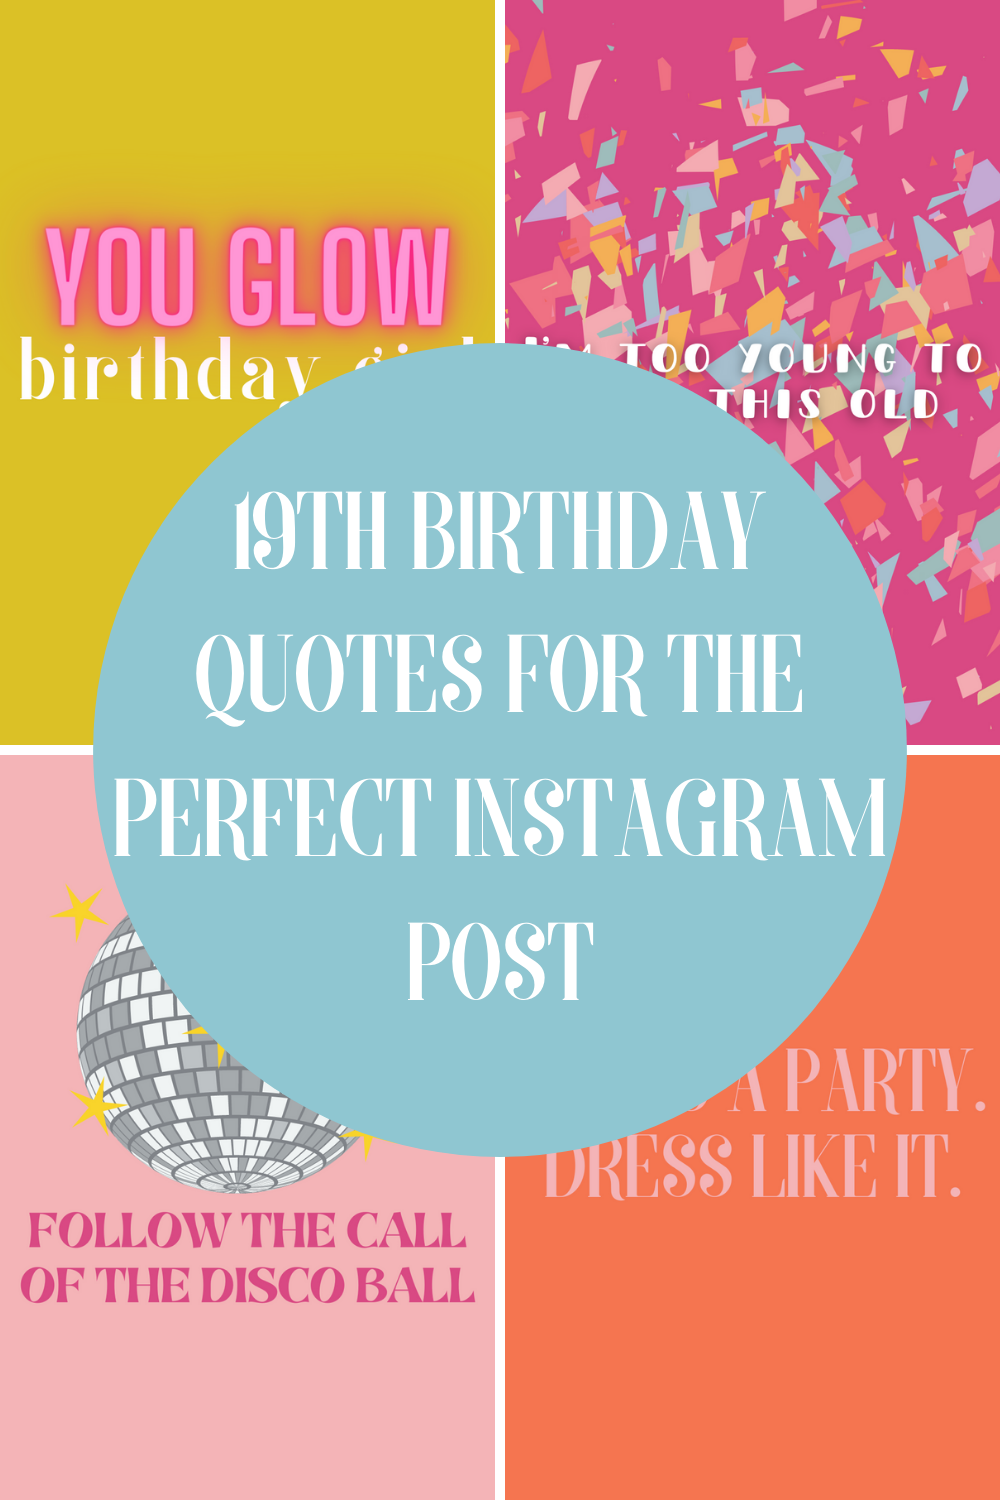 19th Birthday Quotes For Instagram